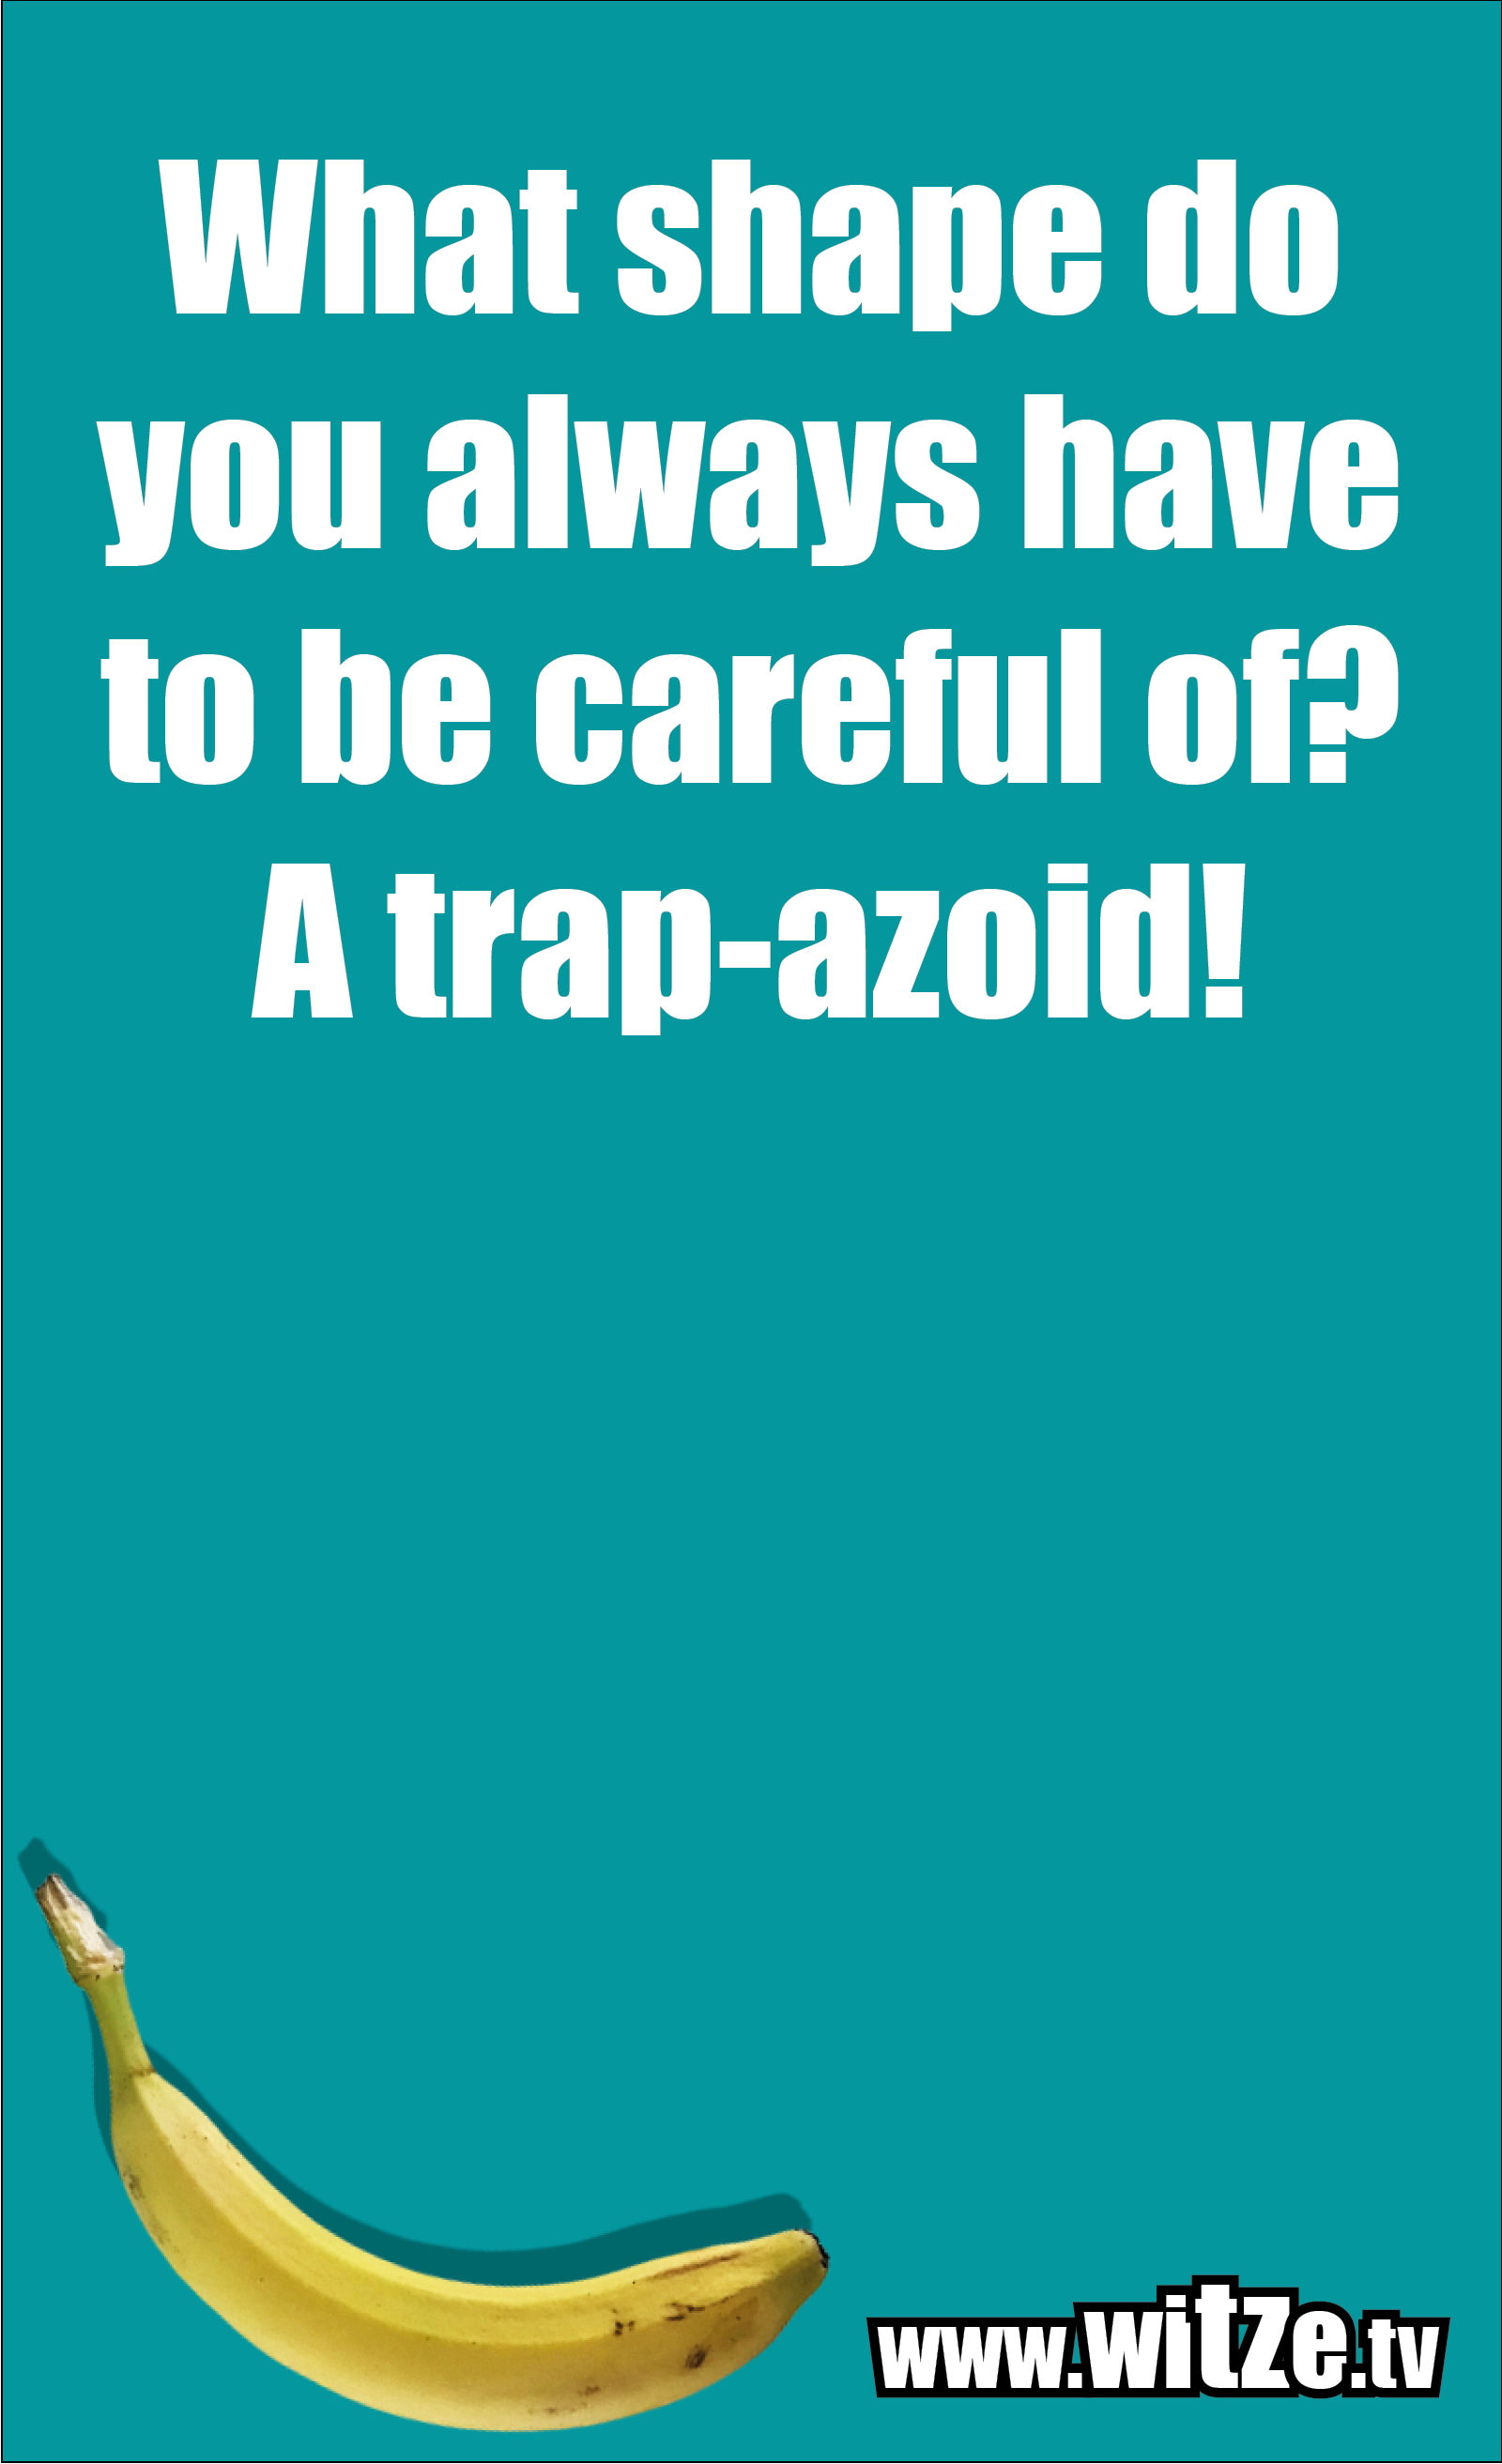 Math joke… What shape do you always have to be careful of? A trap-azoid!